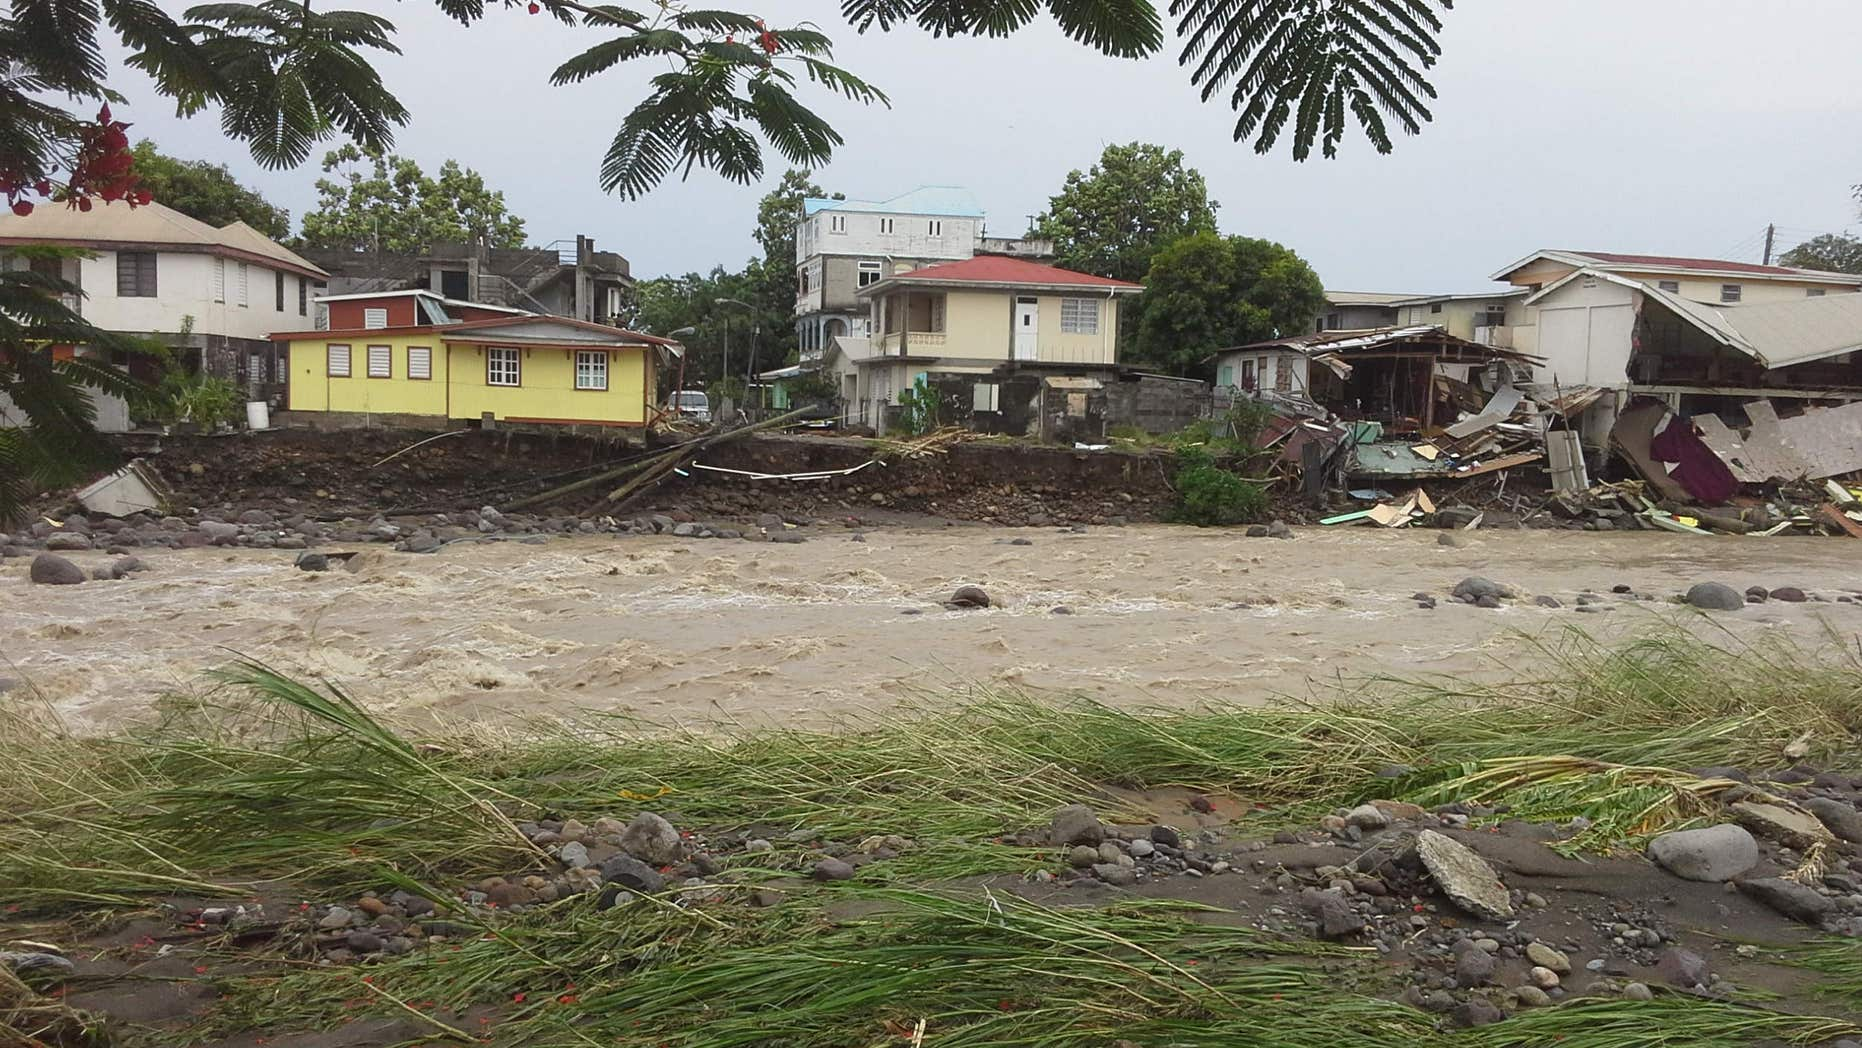 Aug. 27, 2015: A river overflows, affecting some homes along its banks, due to Tropical Storm Erika in Roseau, Dominica.